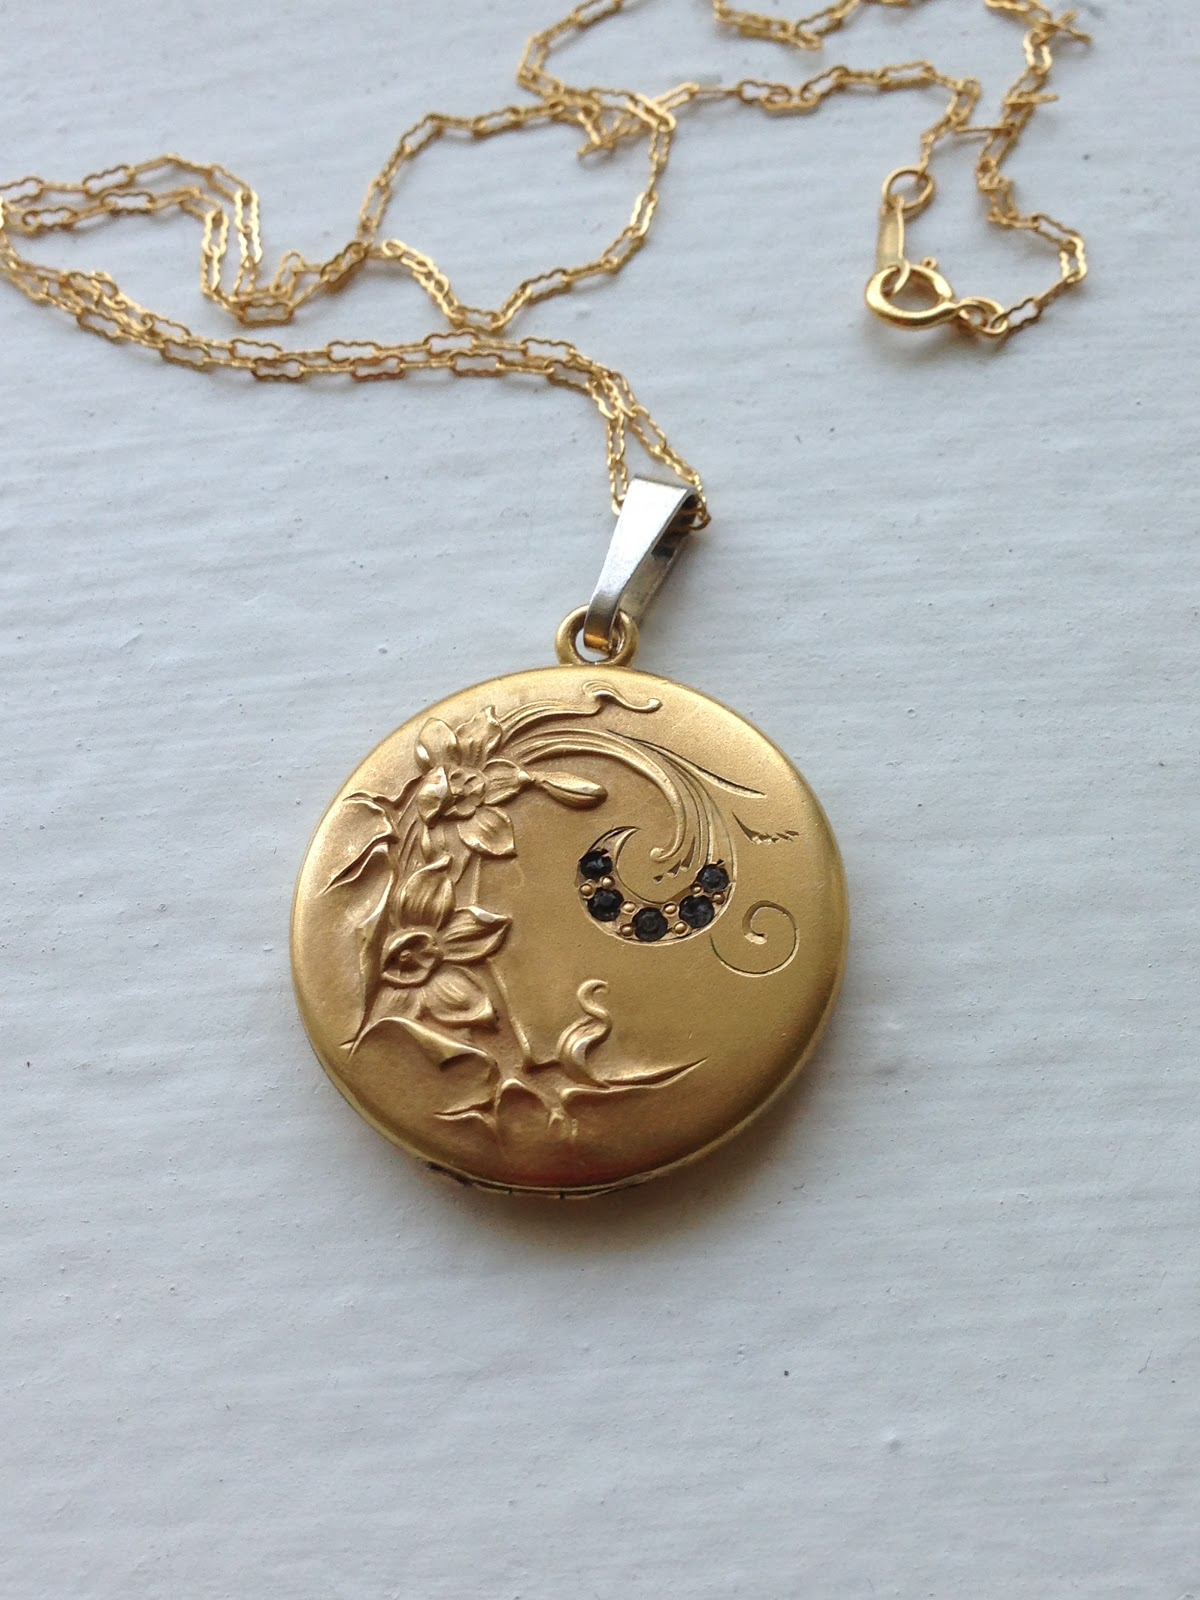 locket pin necklace stuff lockets pinterest me likey vintage and freshyfig gold monogram